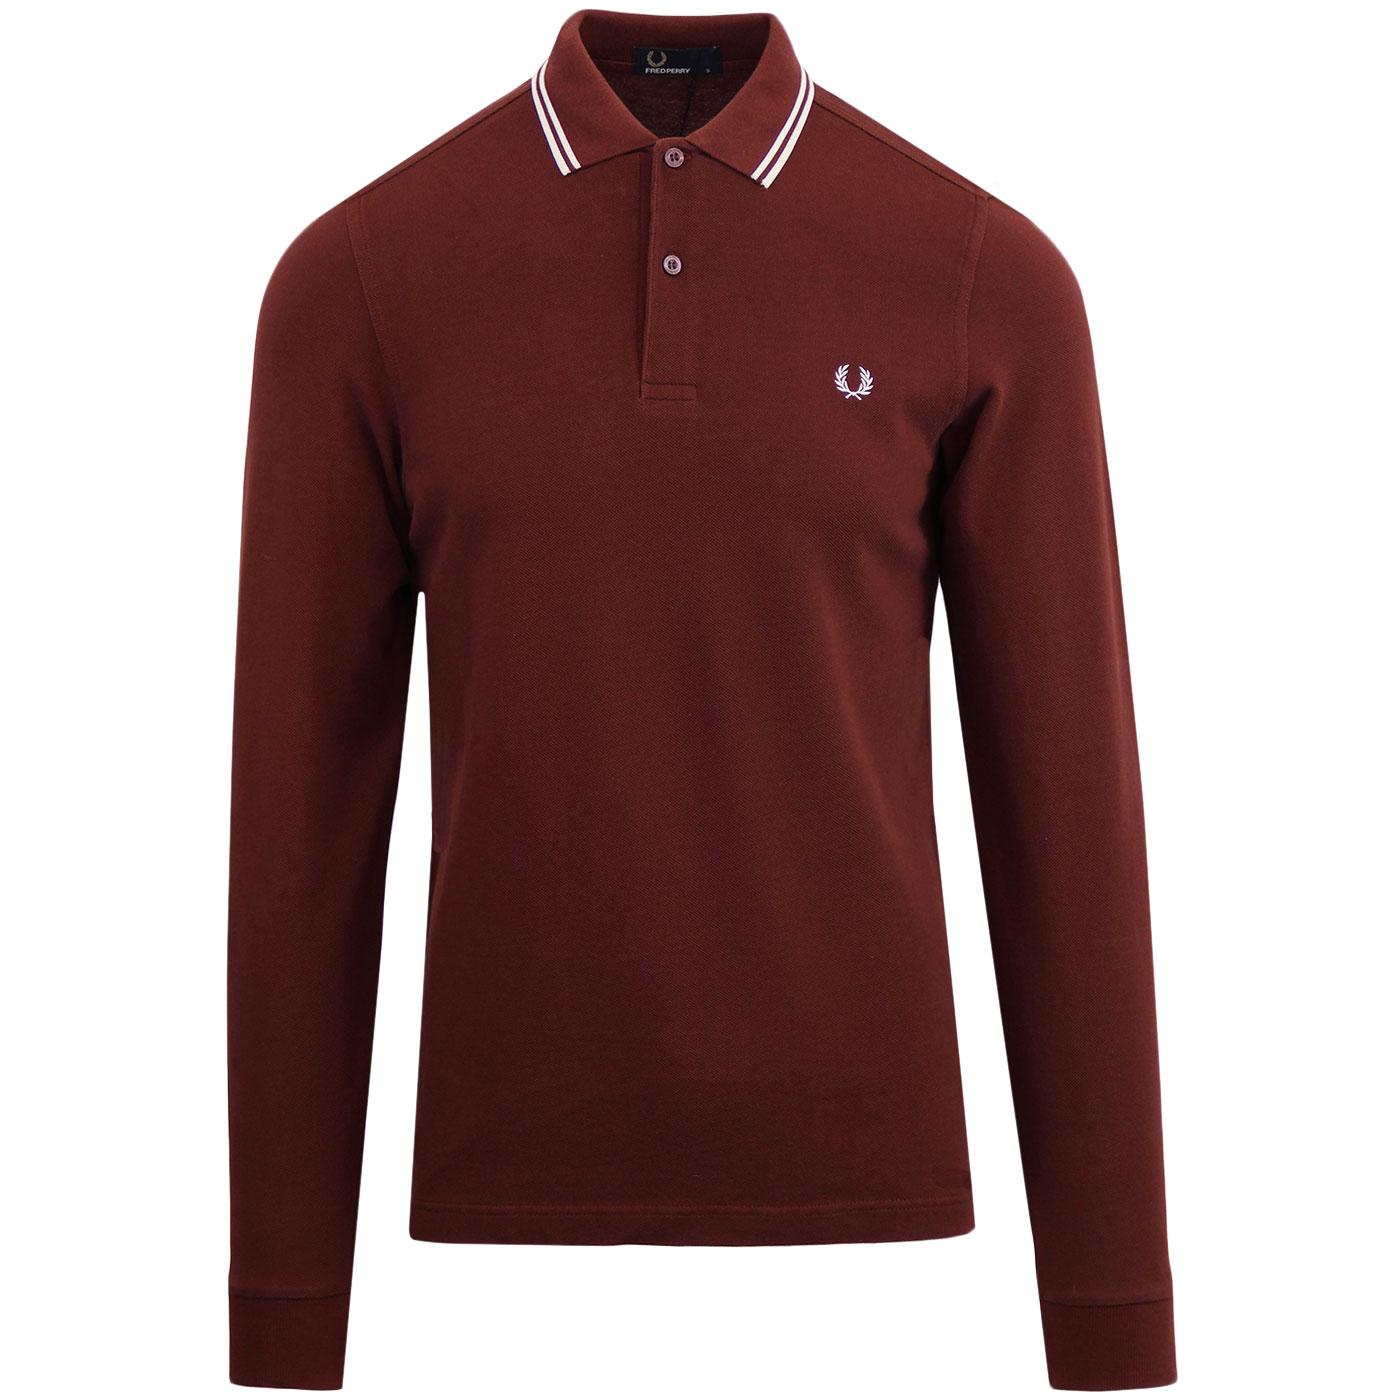 FRED PERRY Mod Twin Tipped Long Sleeve Polo (SR)